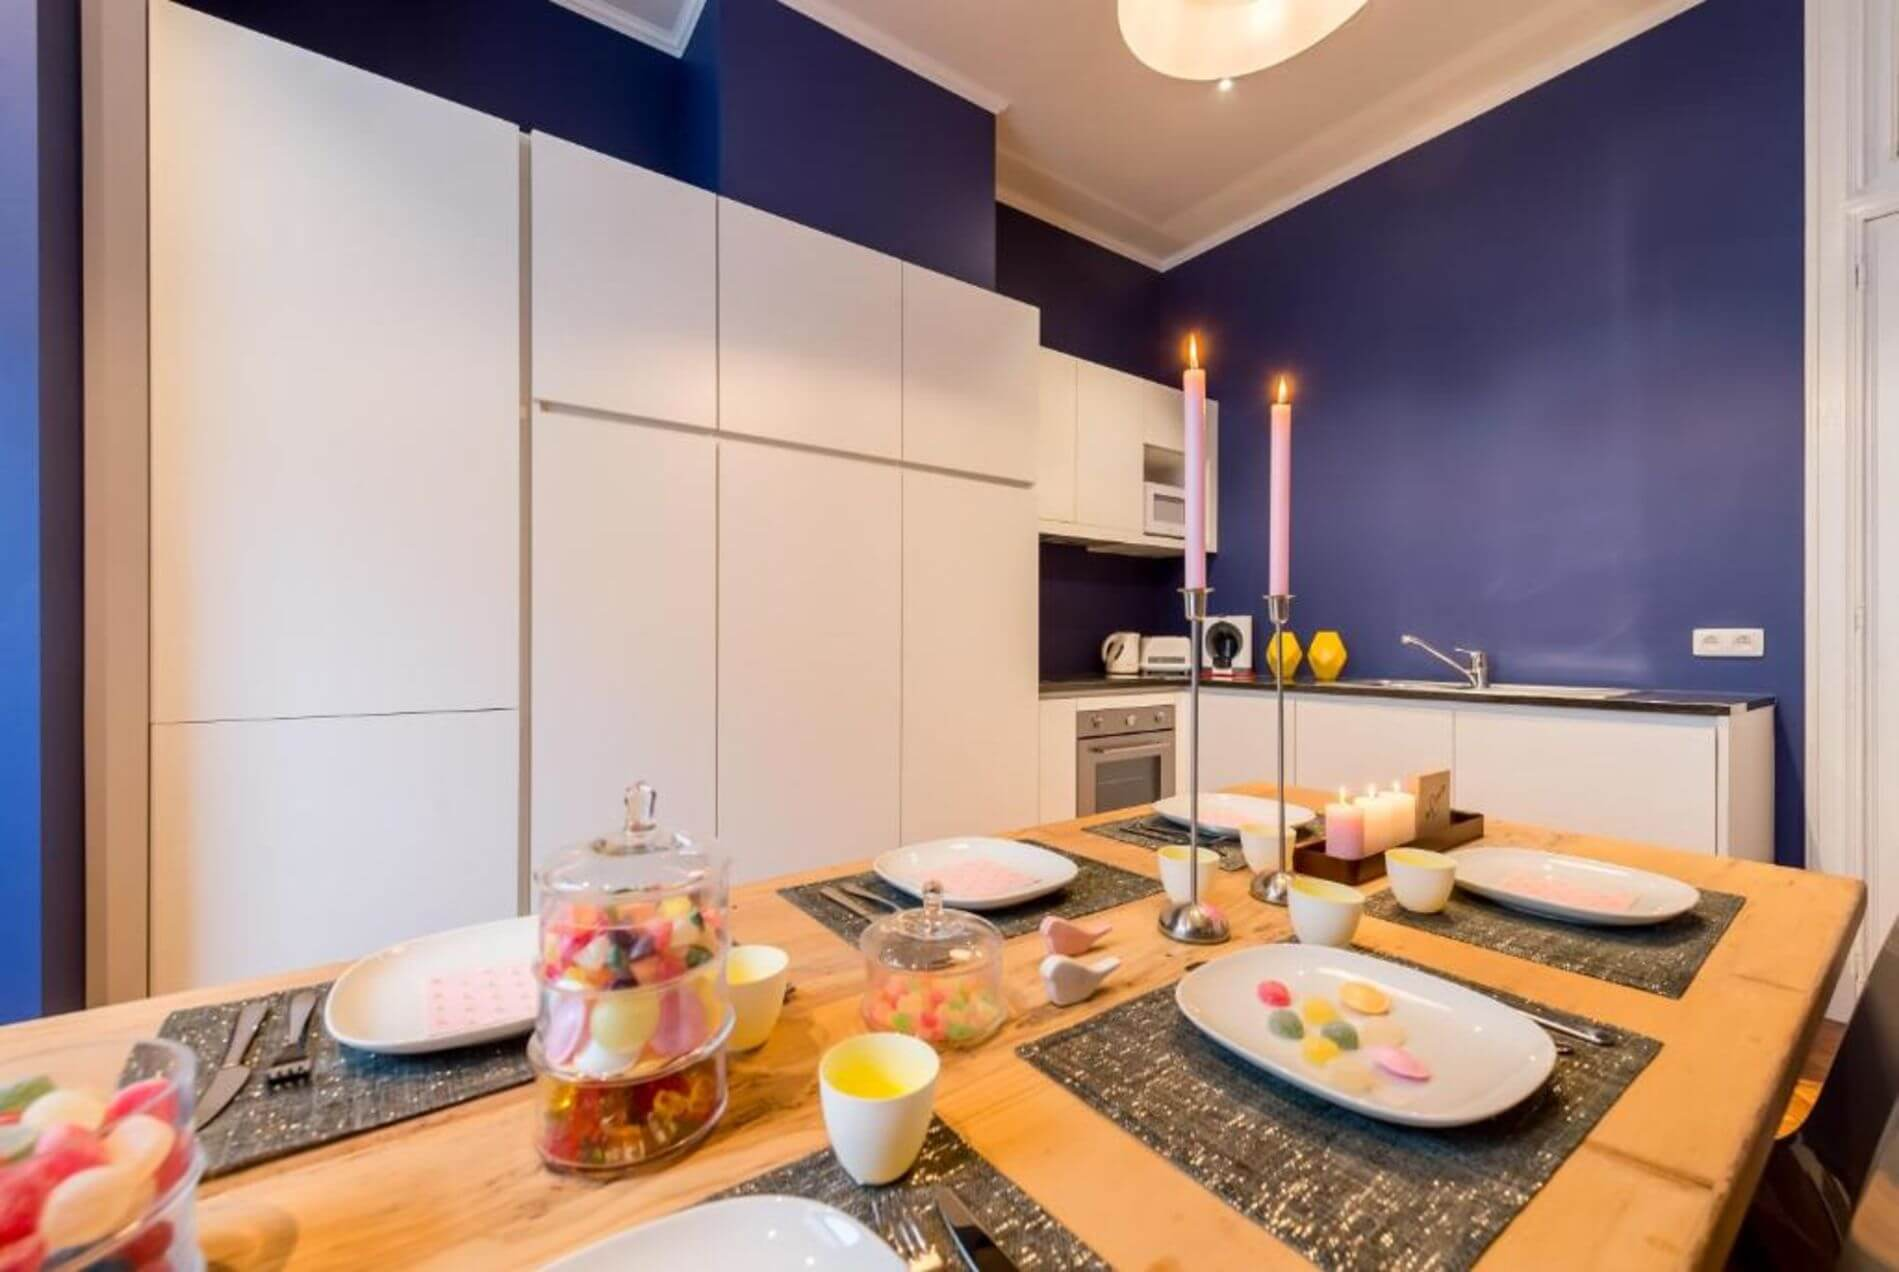 Apartment rental in Antwerp with a terrace